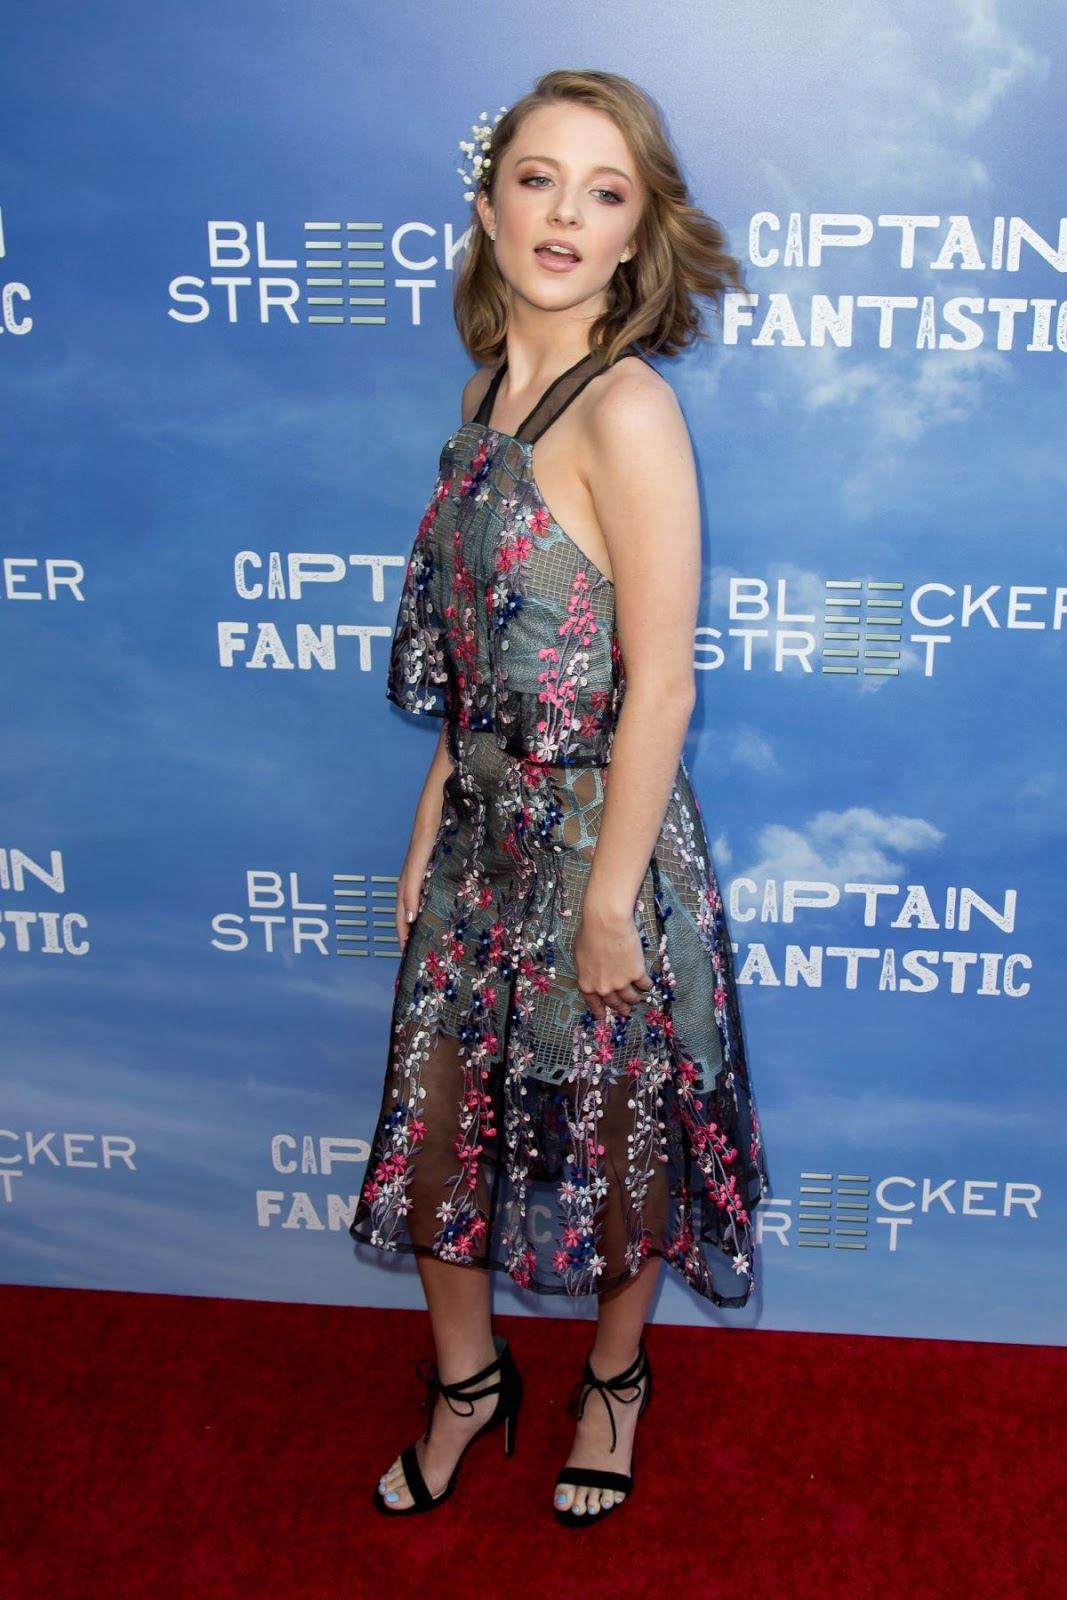 'Captain Fantastic' actress Samantha Isler at Captain Fantastic Los Angeles Premiere